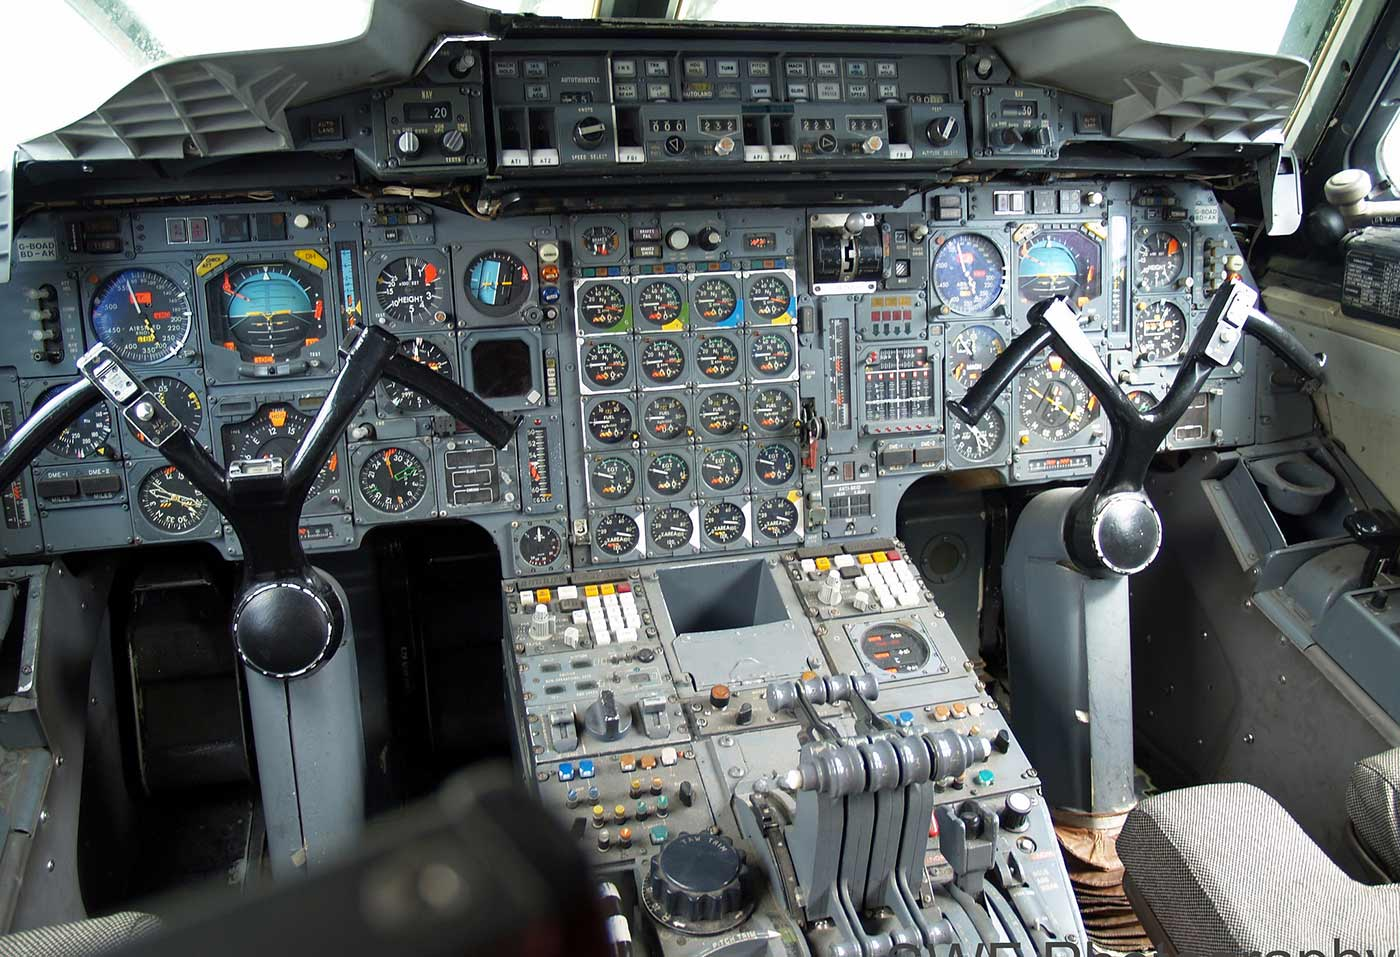 The cockpit of the Concorde SST (tail number G-BOAD).